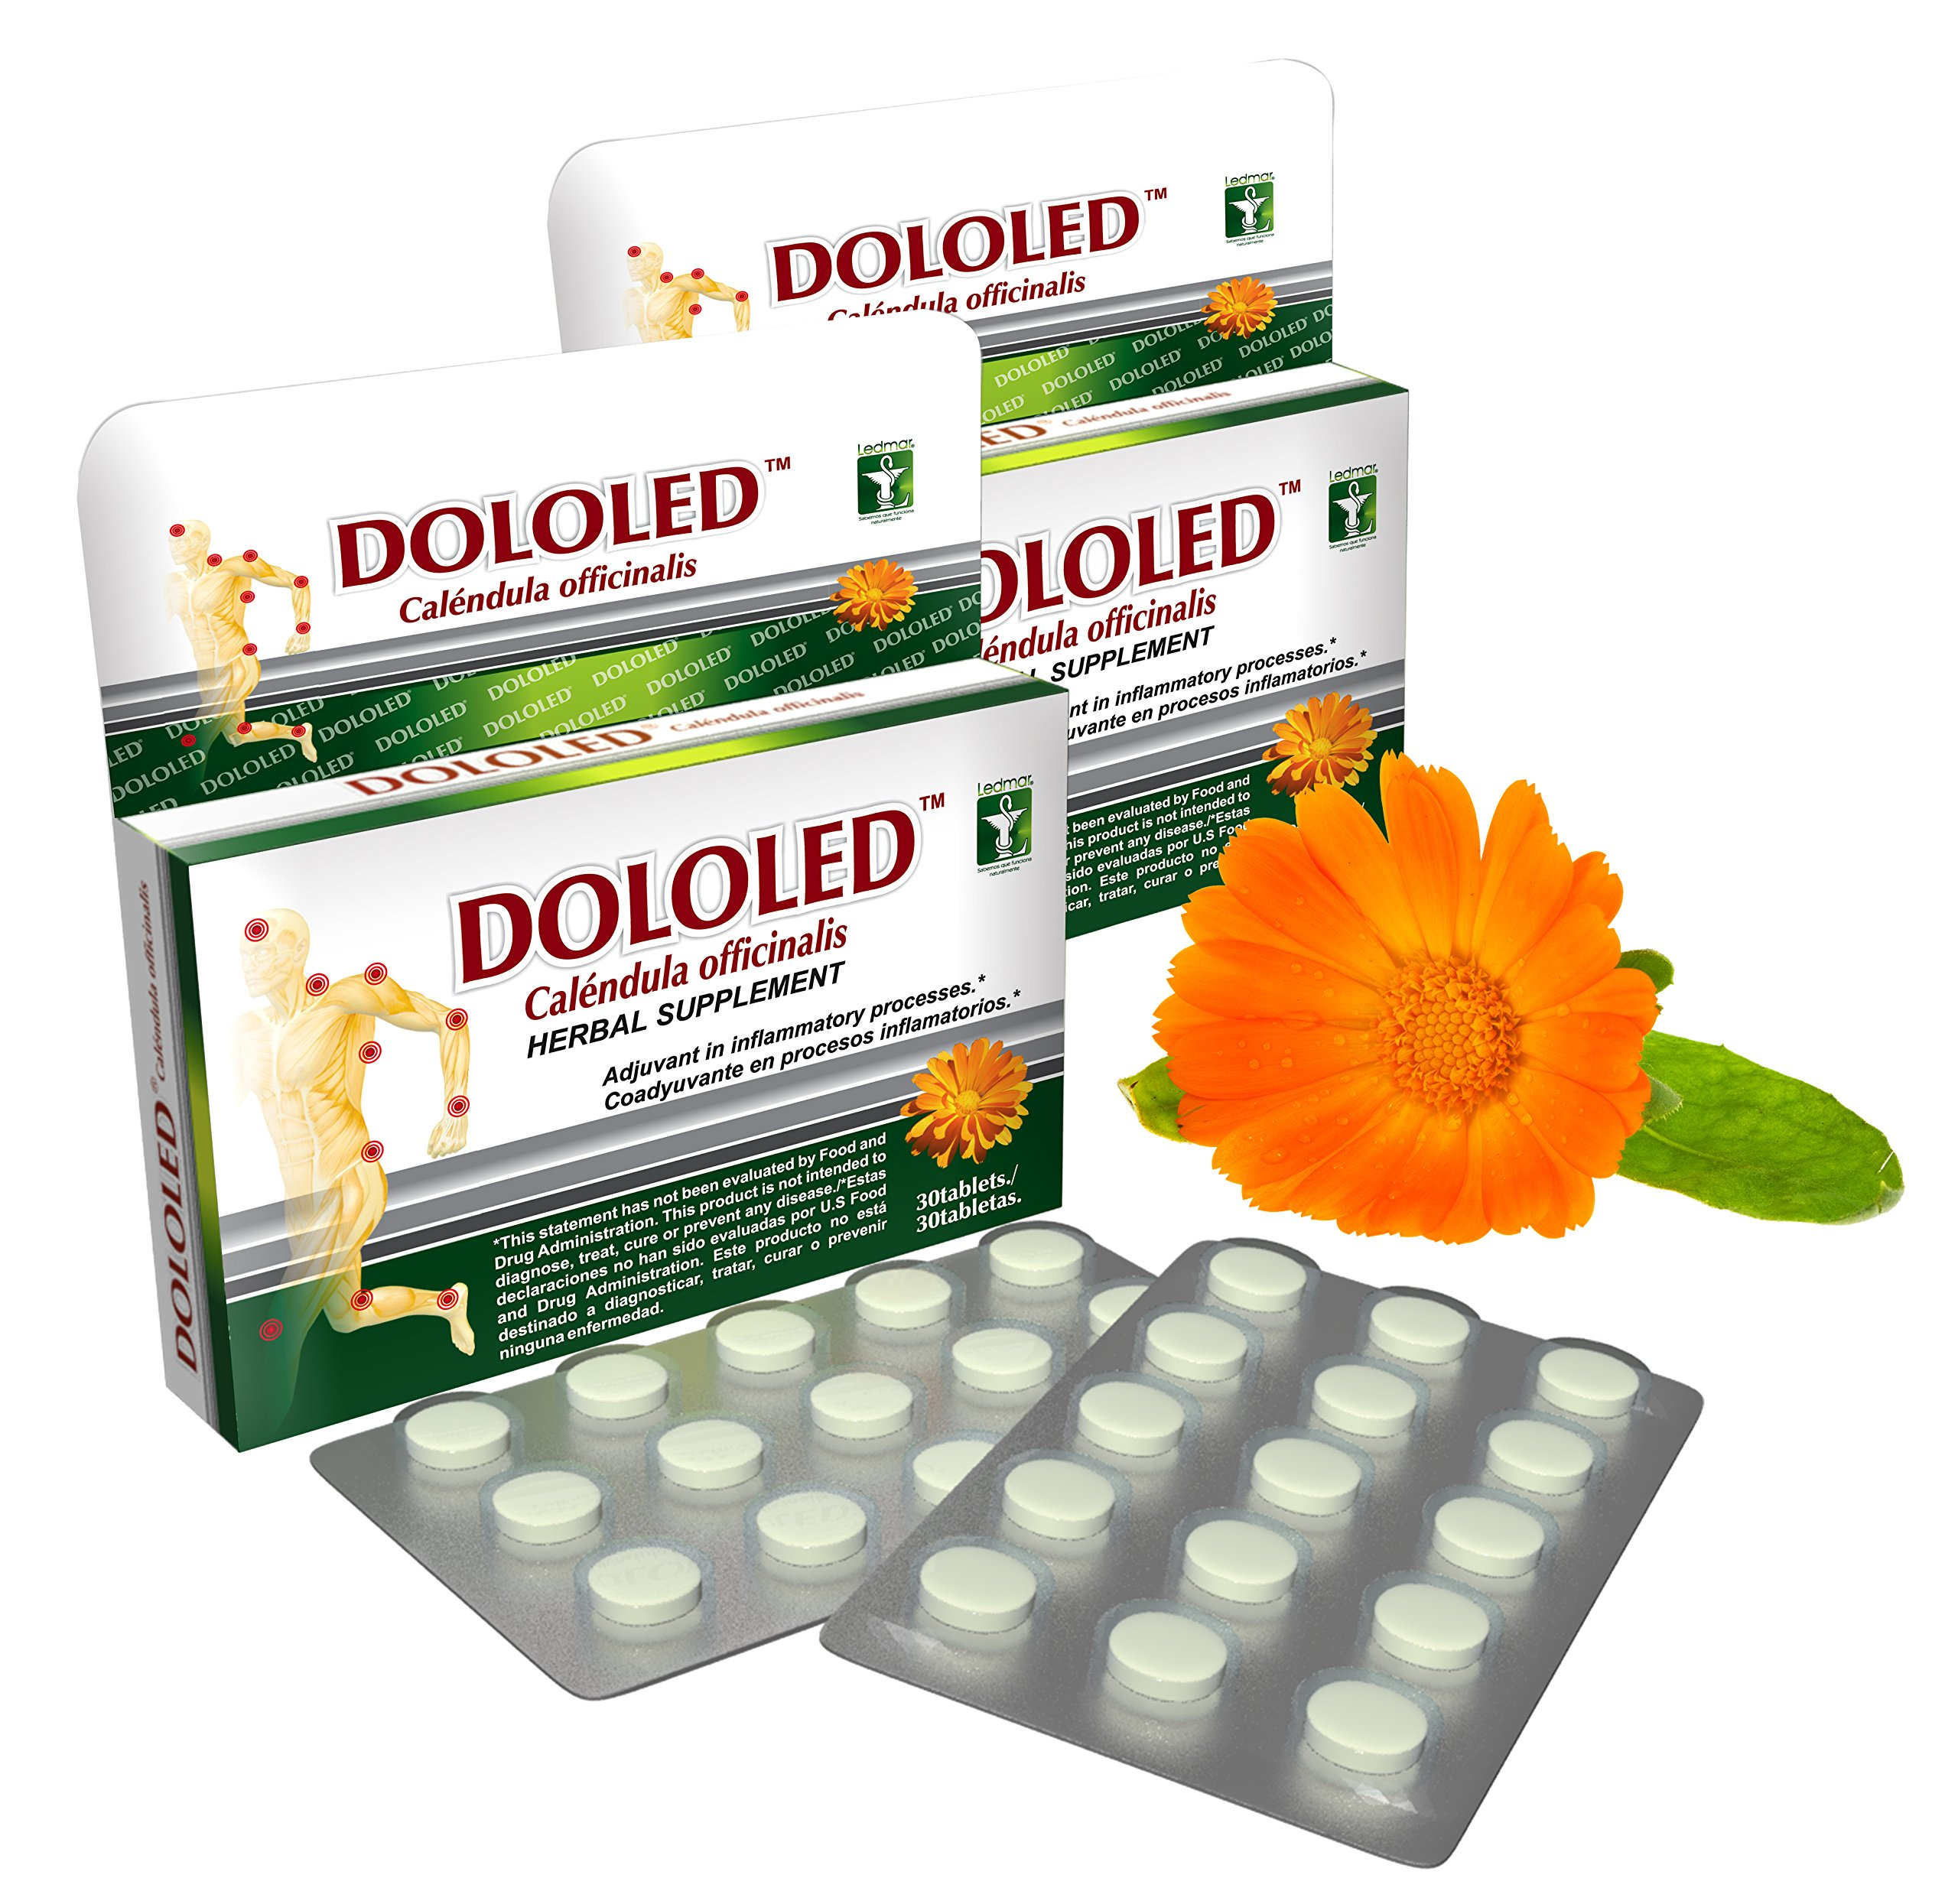 DOLOLED Calendula Officinalis 2 Pack (30 Tablets, Total 60 Tablets) 150 mg Each Tablet, for All Types of Pain, Anti-inflammatory, 100% Natural, Antioxidant. Non GMO by Ledmar